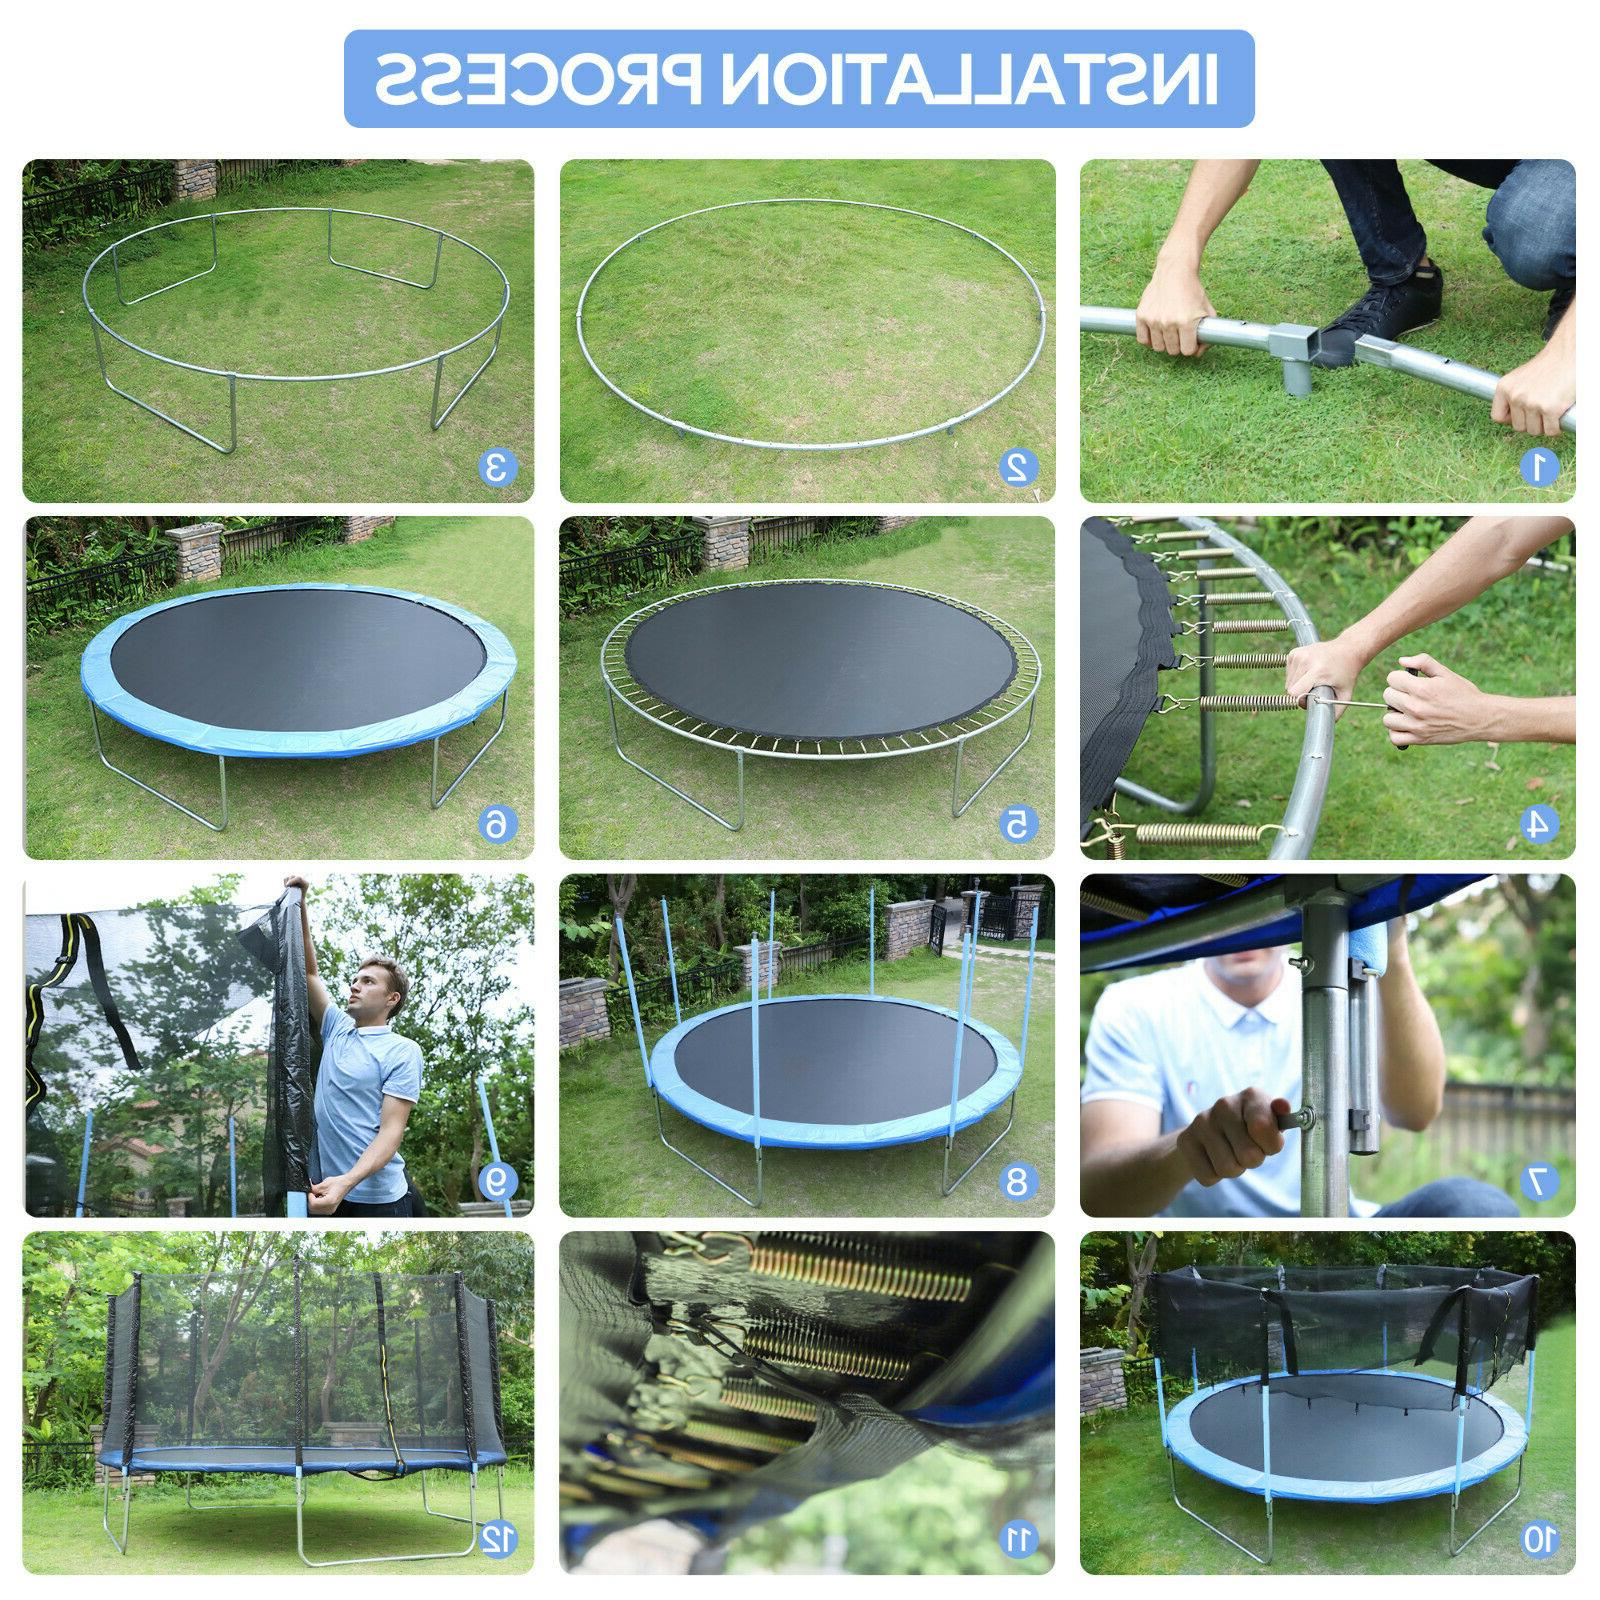 14FT with Safety Enclosure Net, and Ladder,